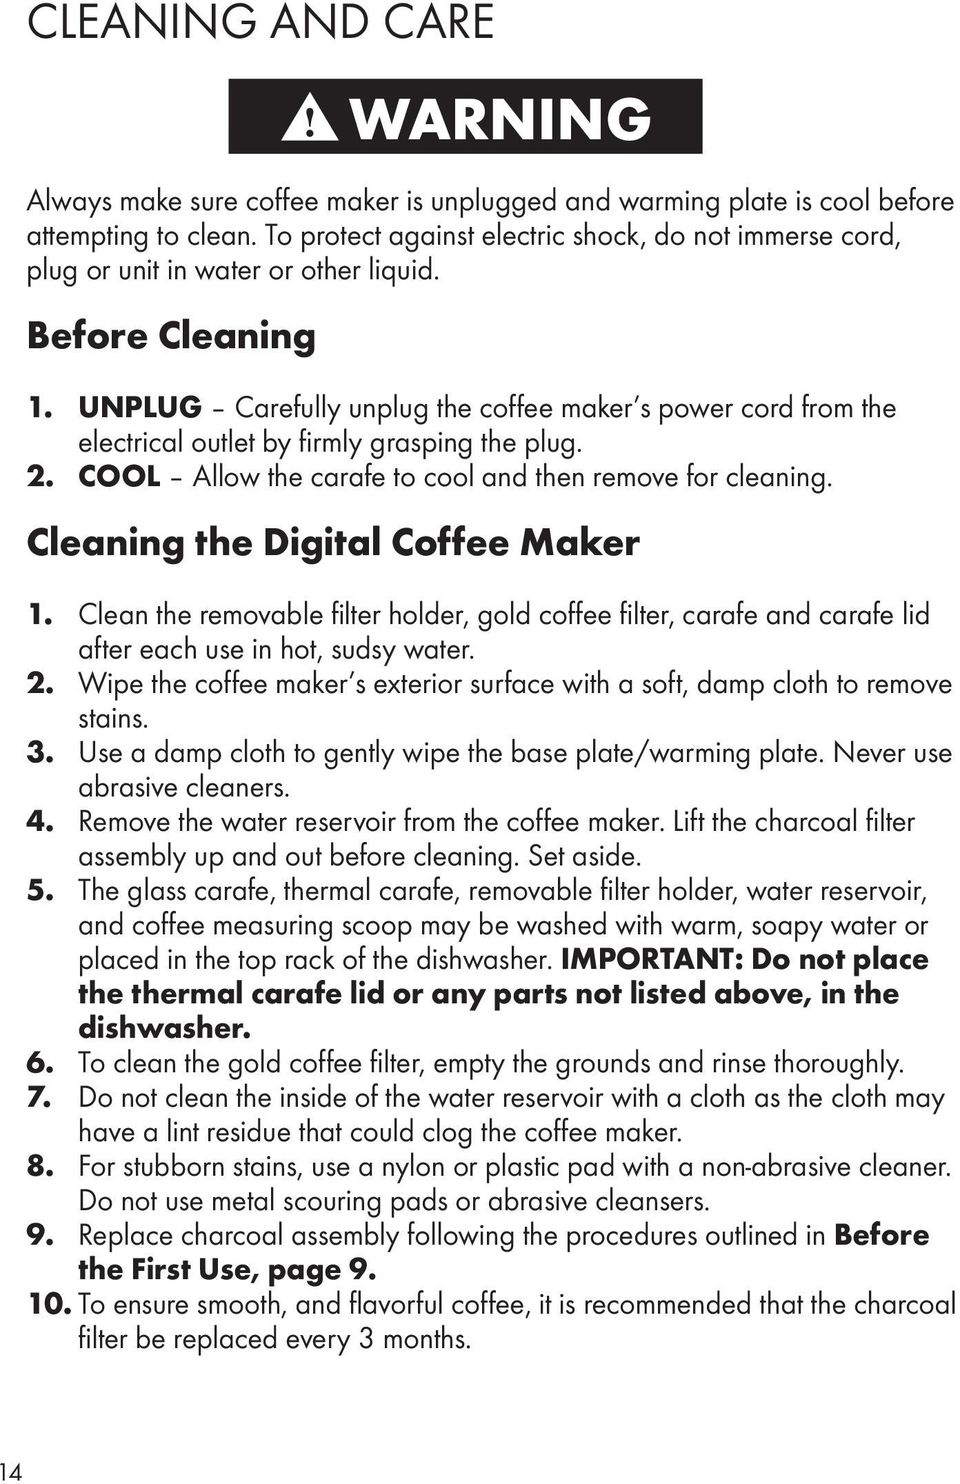 UNPLUG Carefully unplug the coffee maker s power cord from the electrical outlet by firmly grasping the plug. 2. COOL Allow the carafe to cool and then remove for cleaning.